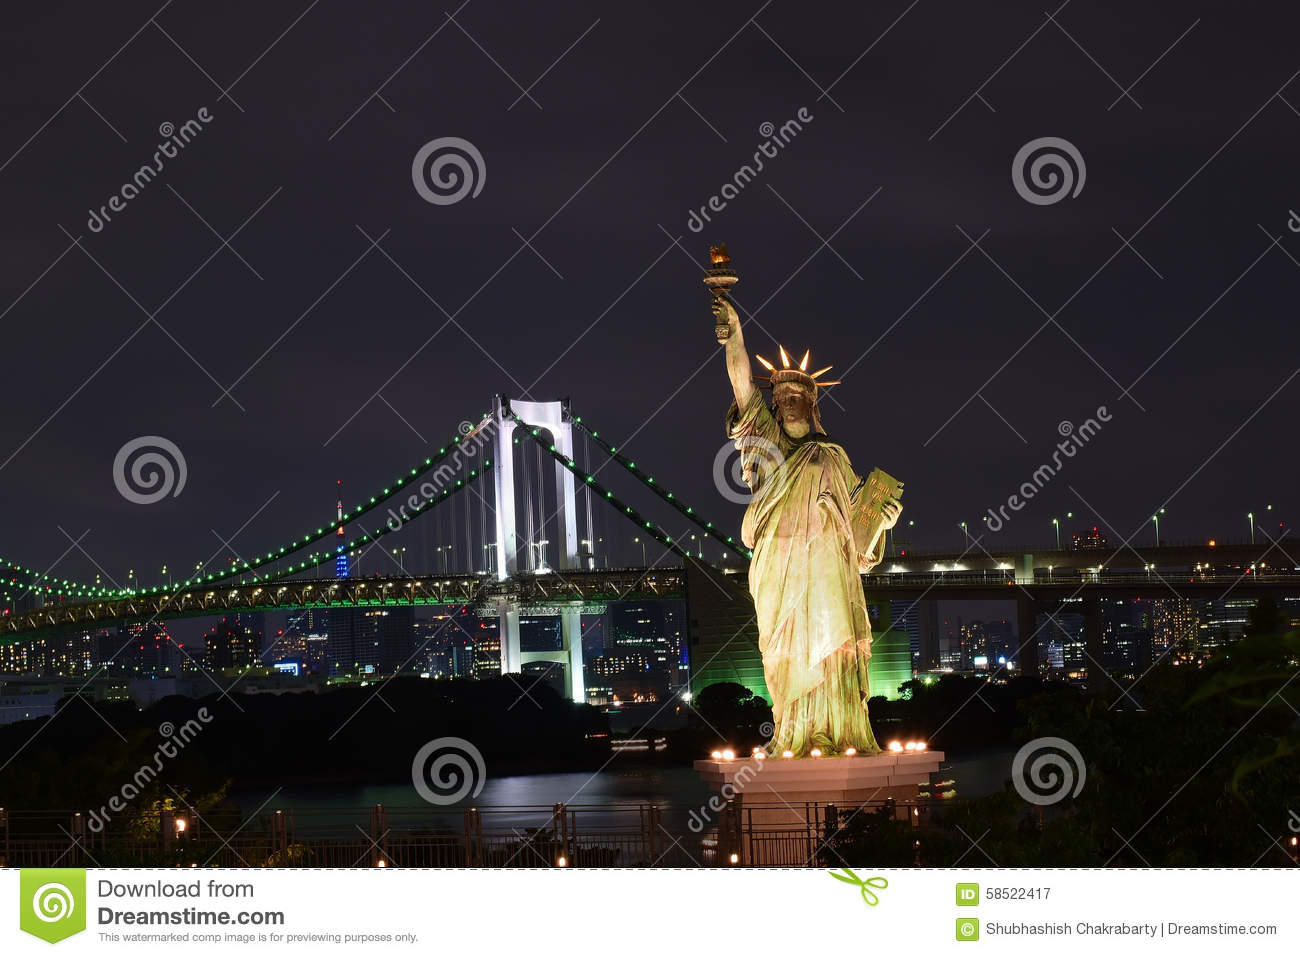 how to say statue of liberty in japanese